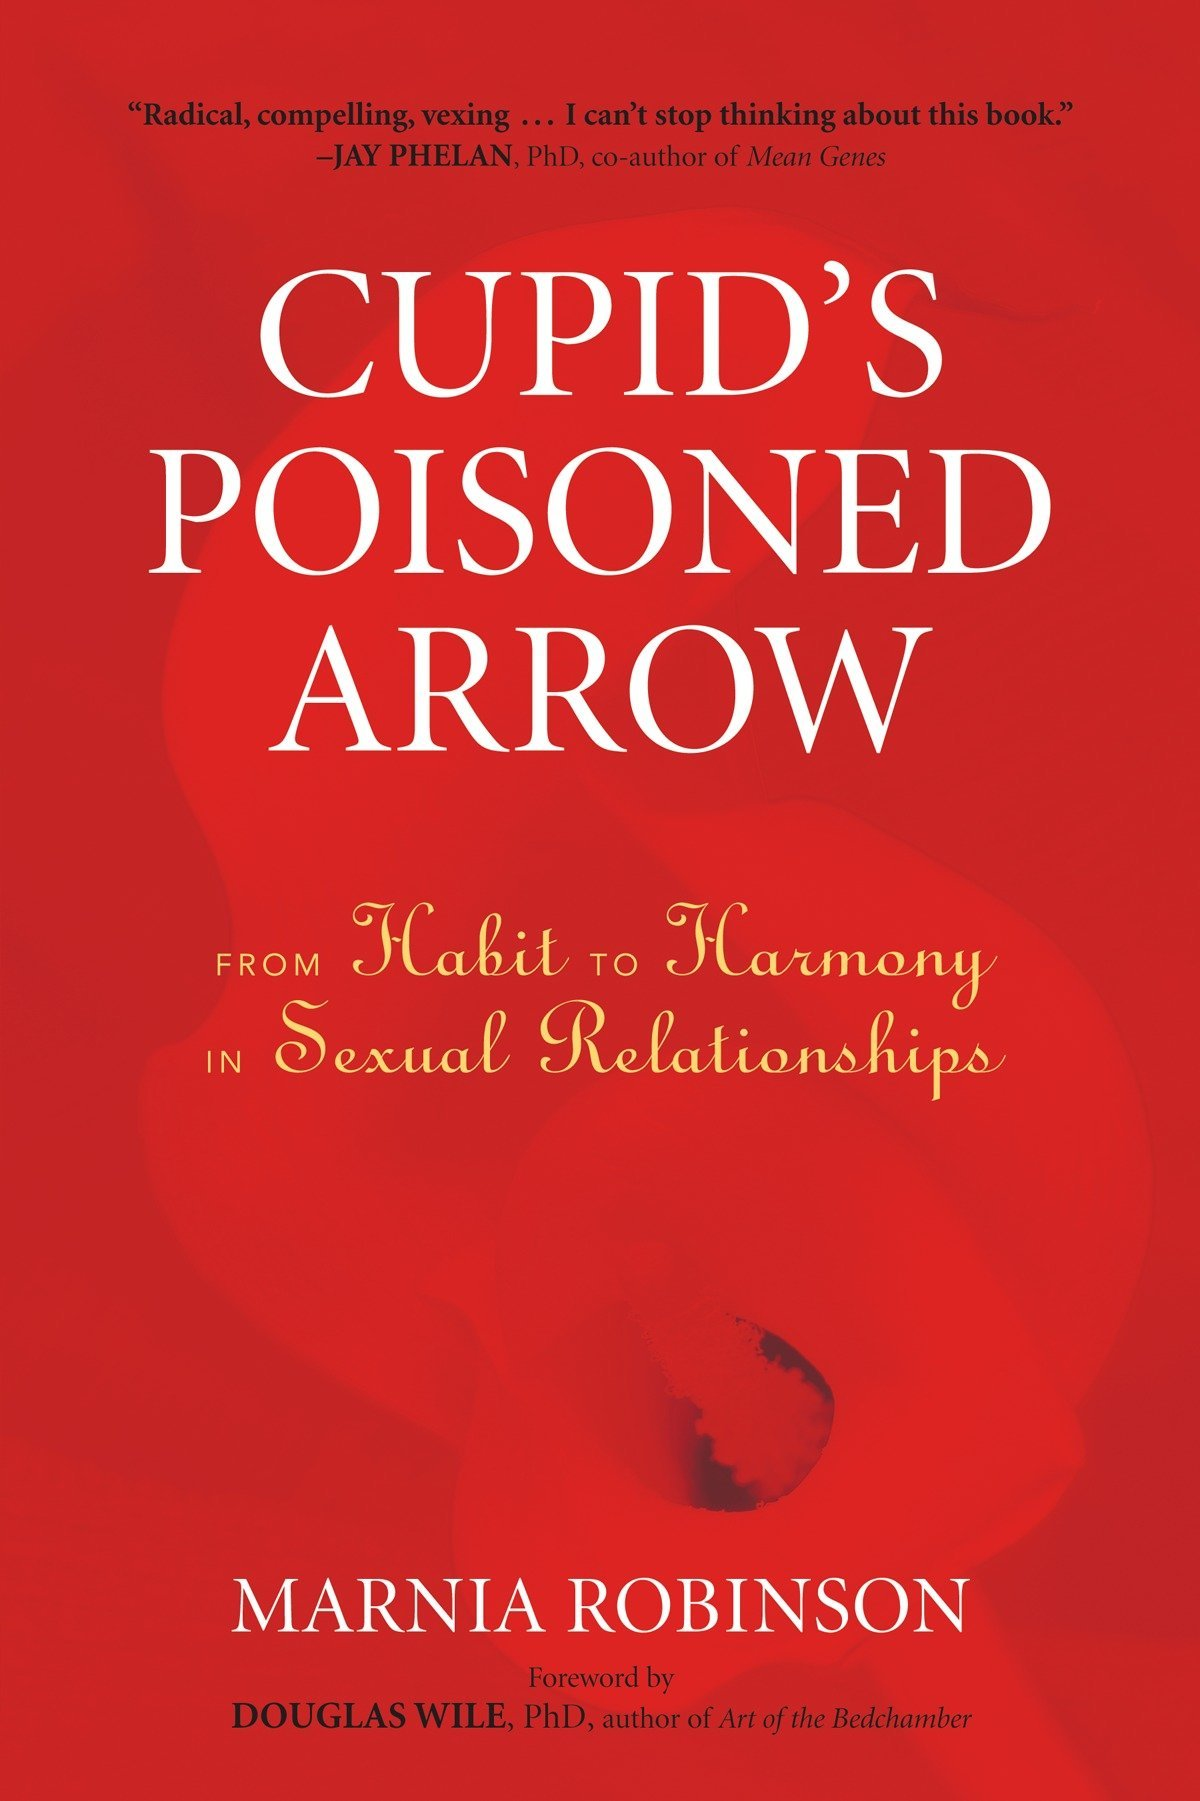 Cupid's Poisoned Arrow: From Habit to Harmony in Sexual Relationships by North Atlantic Books